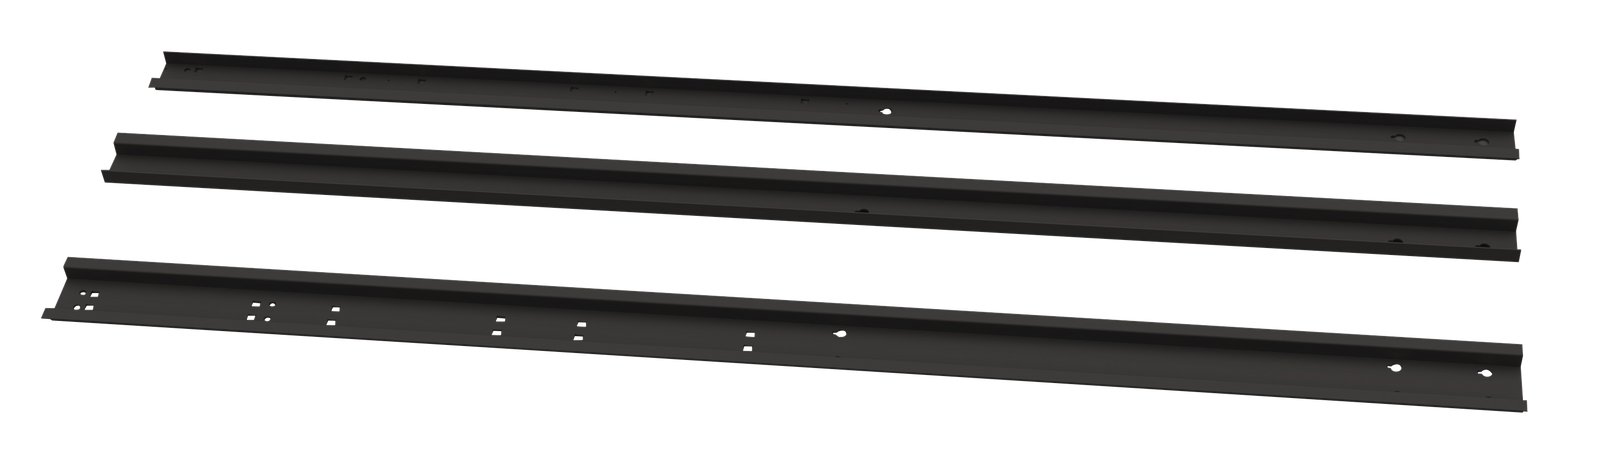 Side Bracket w/Right & Left Black Color (78.74 x 3.54 x 1.18)